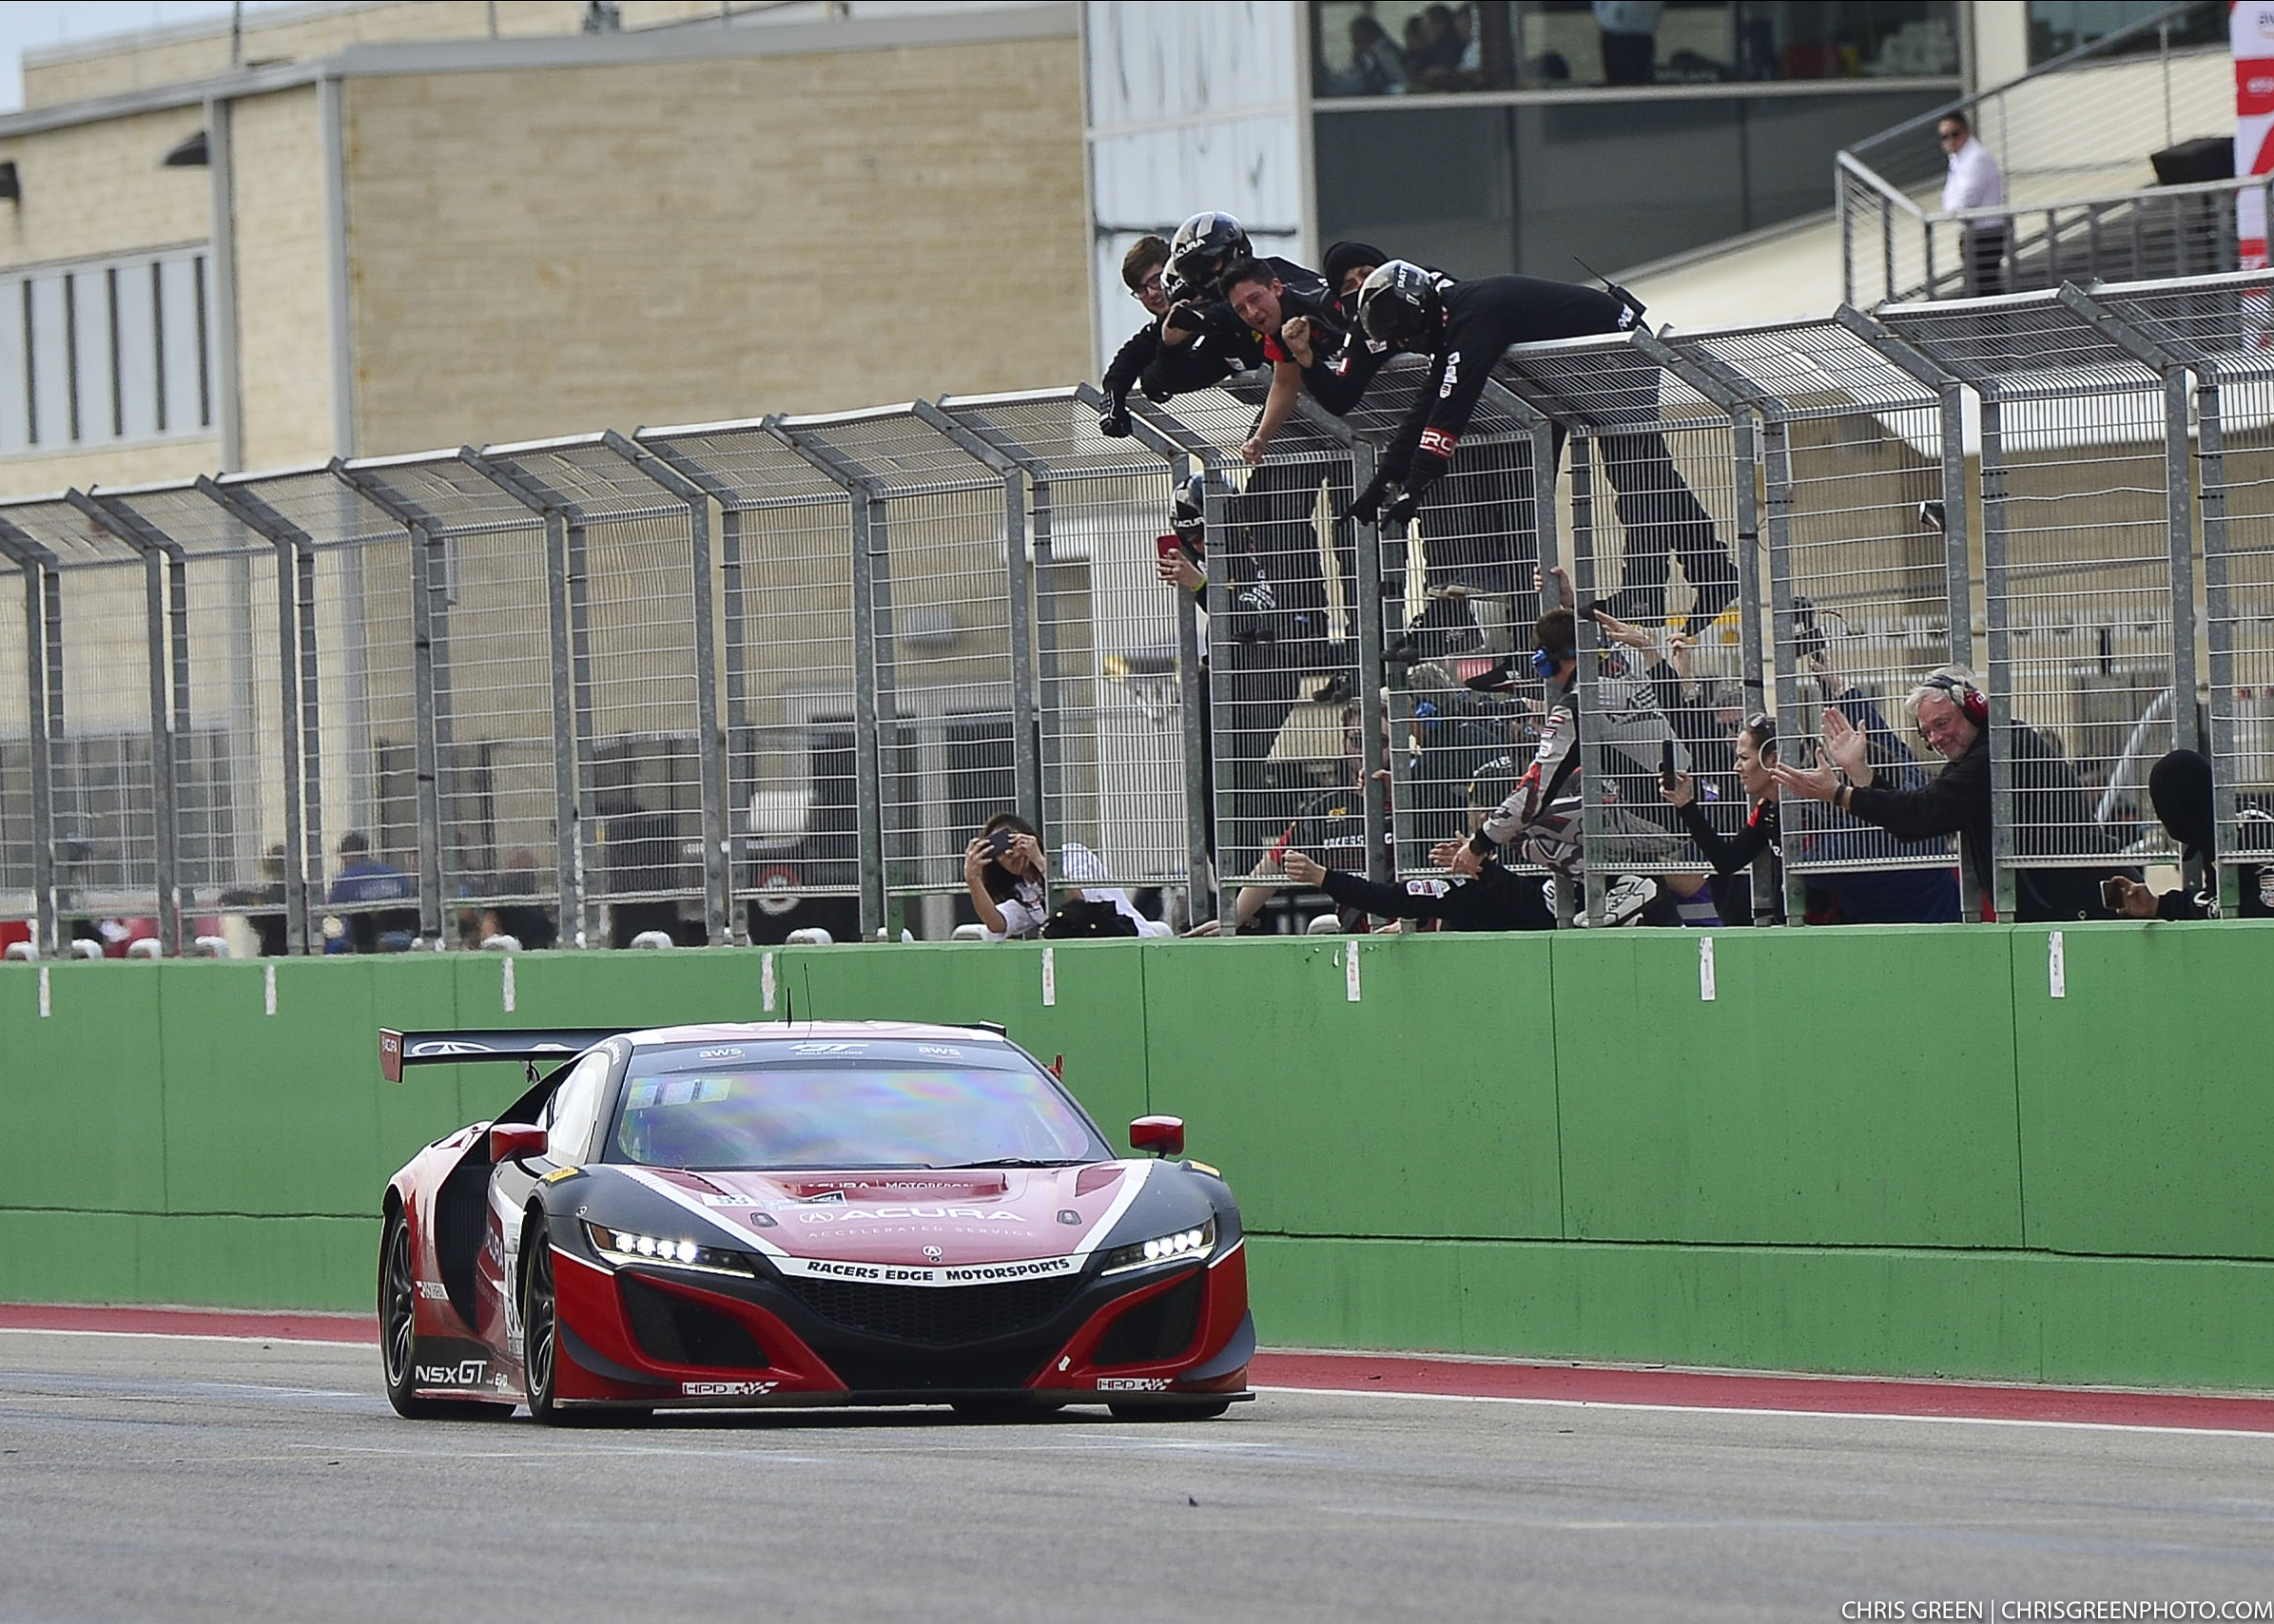 The No 93 Acura NSX Gt3 Evo takes the ch